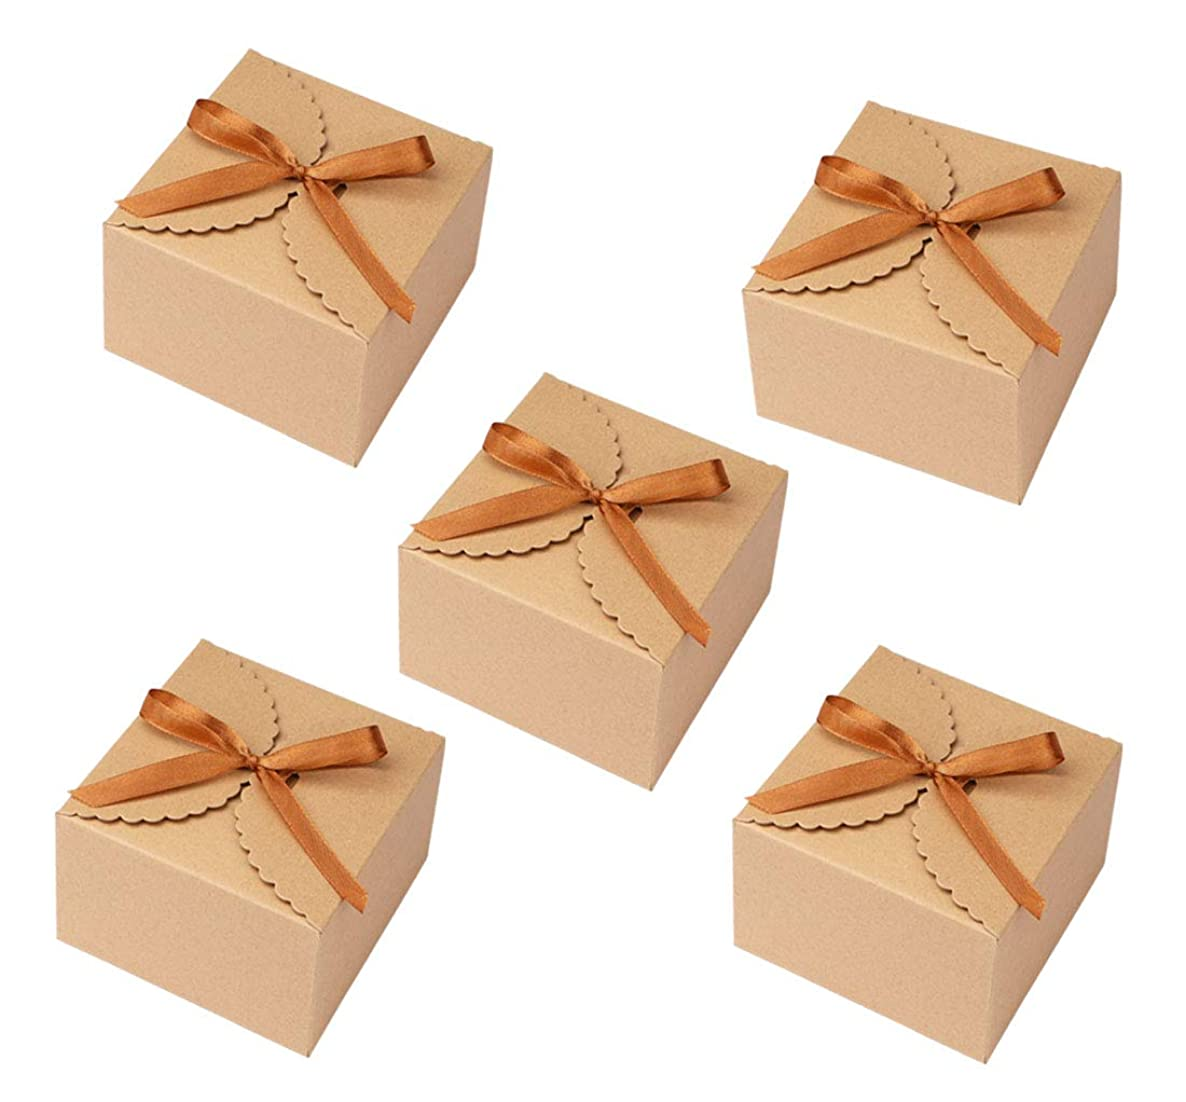 Sdootjewelry 50 Pcs Kraft Paper Candy Favor Boxes, Decorative Treat Box with a Roll of Brown Ribbon Party Wedding Birthday Favor Gift Boxes